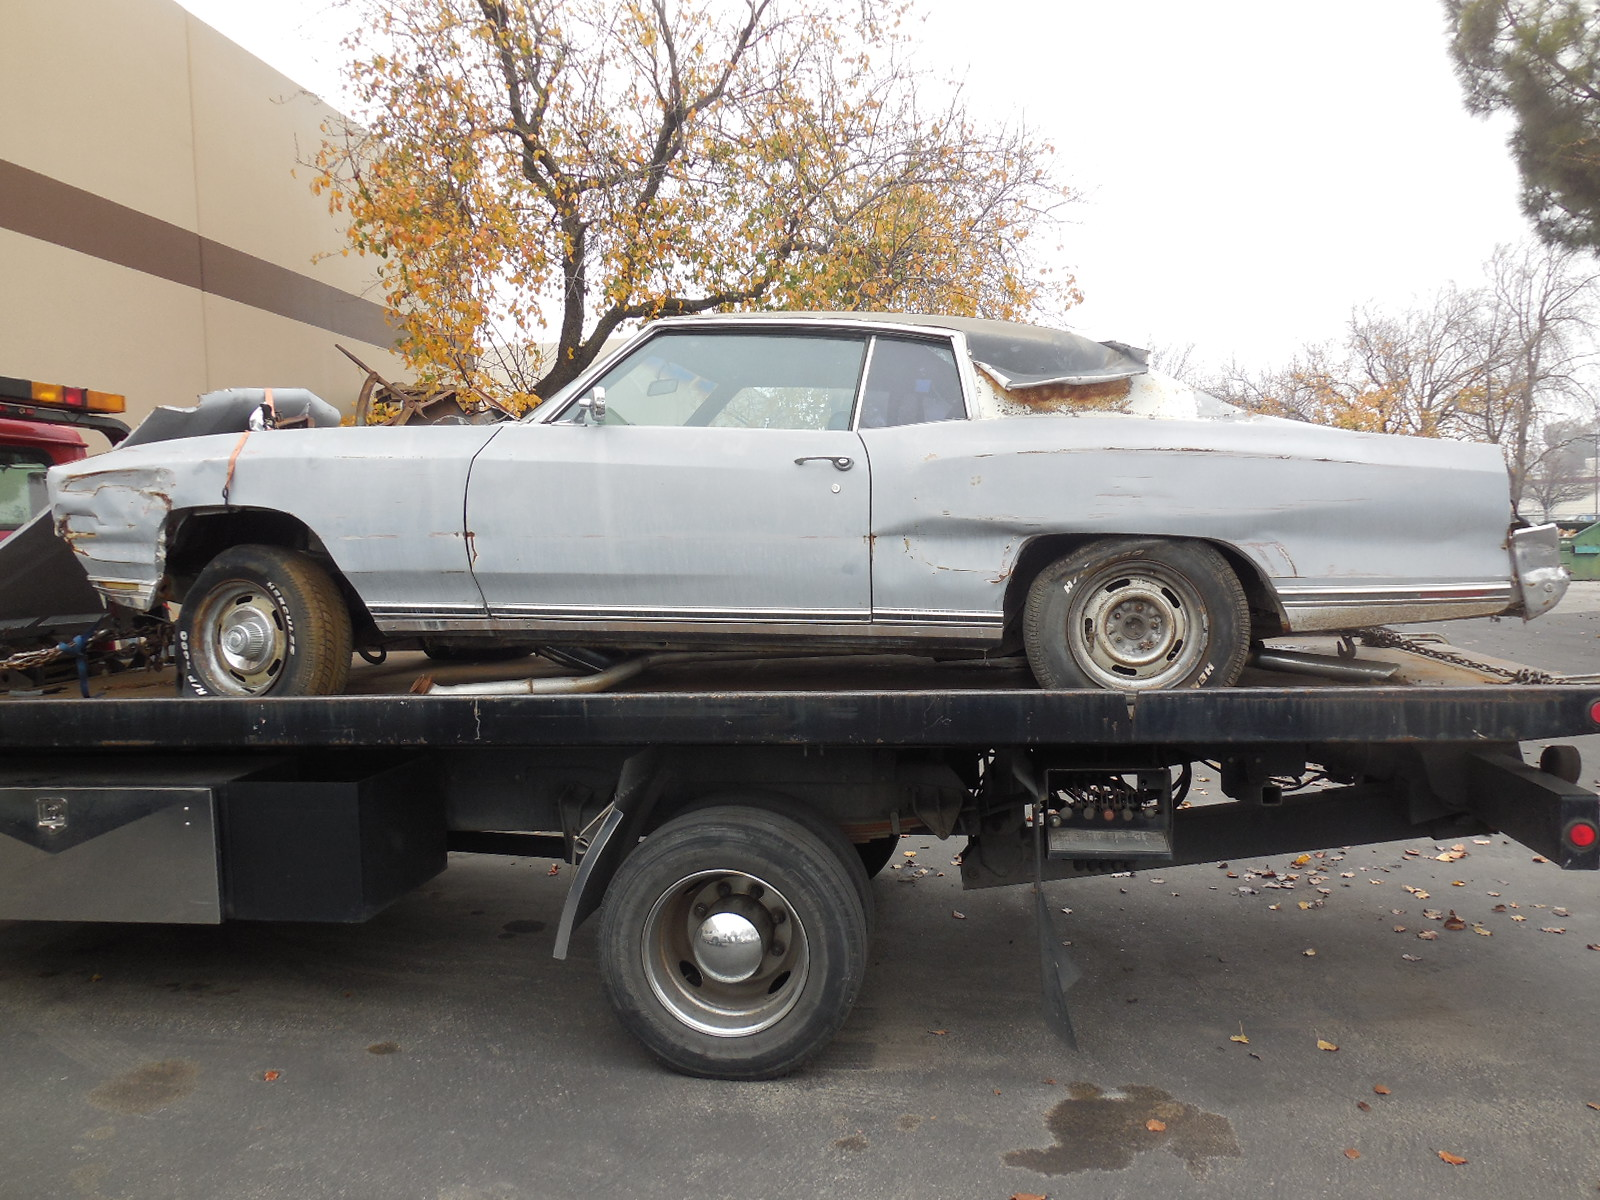 1970 Chevrolet Monte Carlo Parts Car Gm Sports